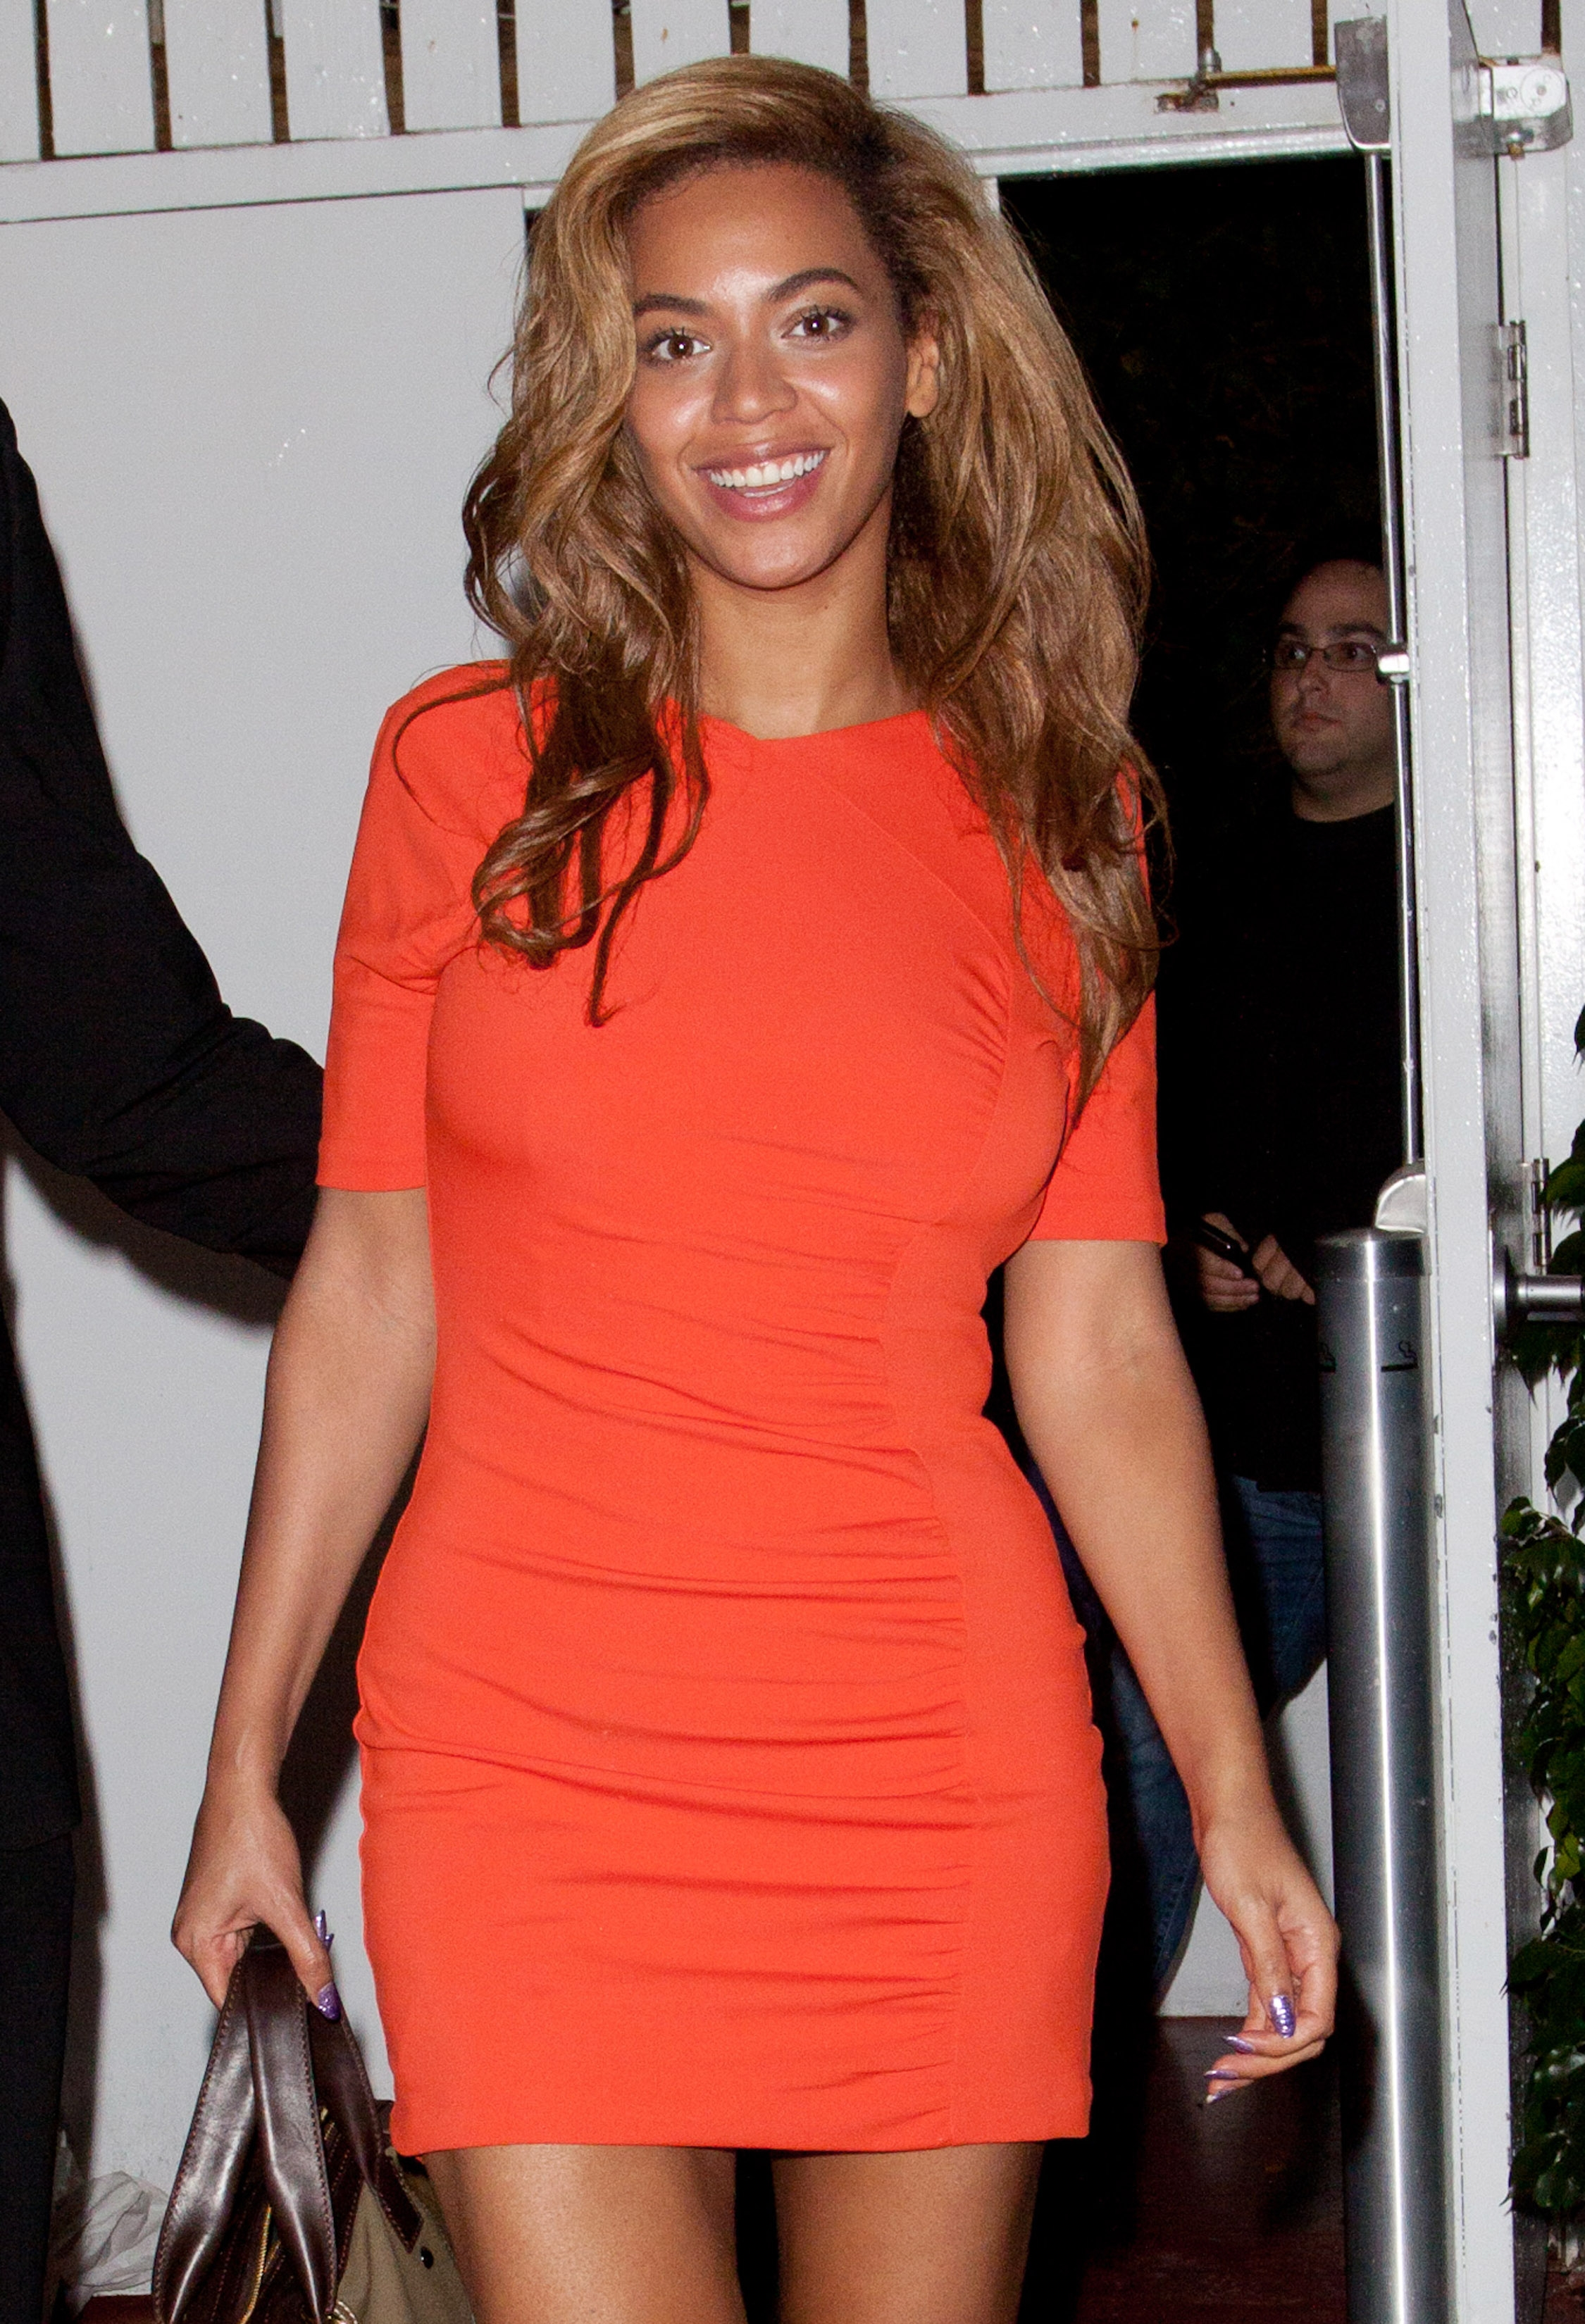 Beyonce's Twitter Hits A Million Followers Without A Tweet